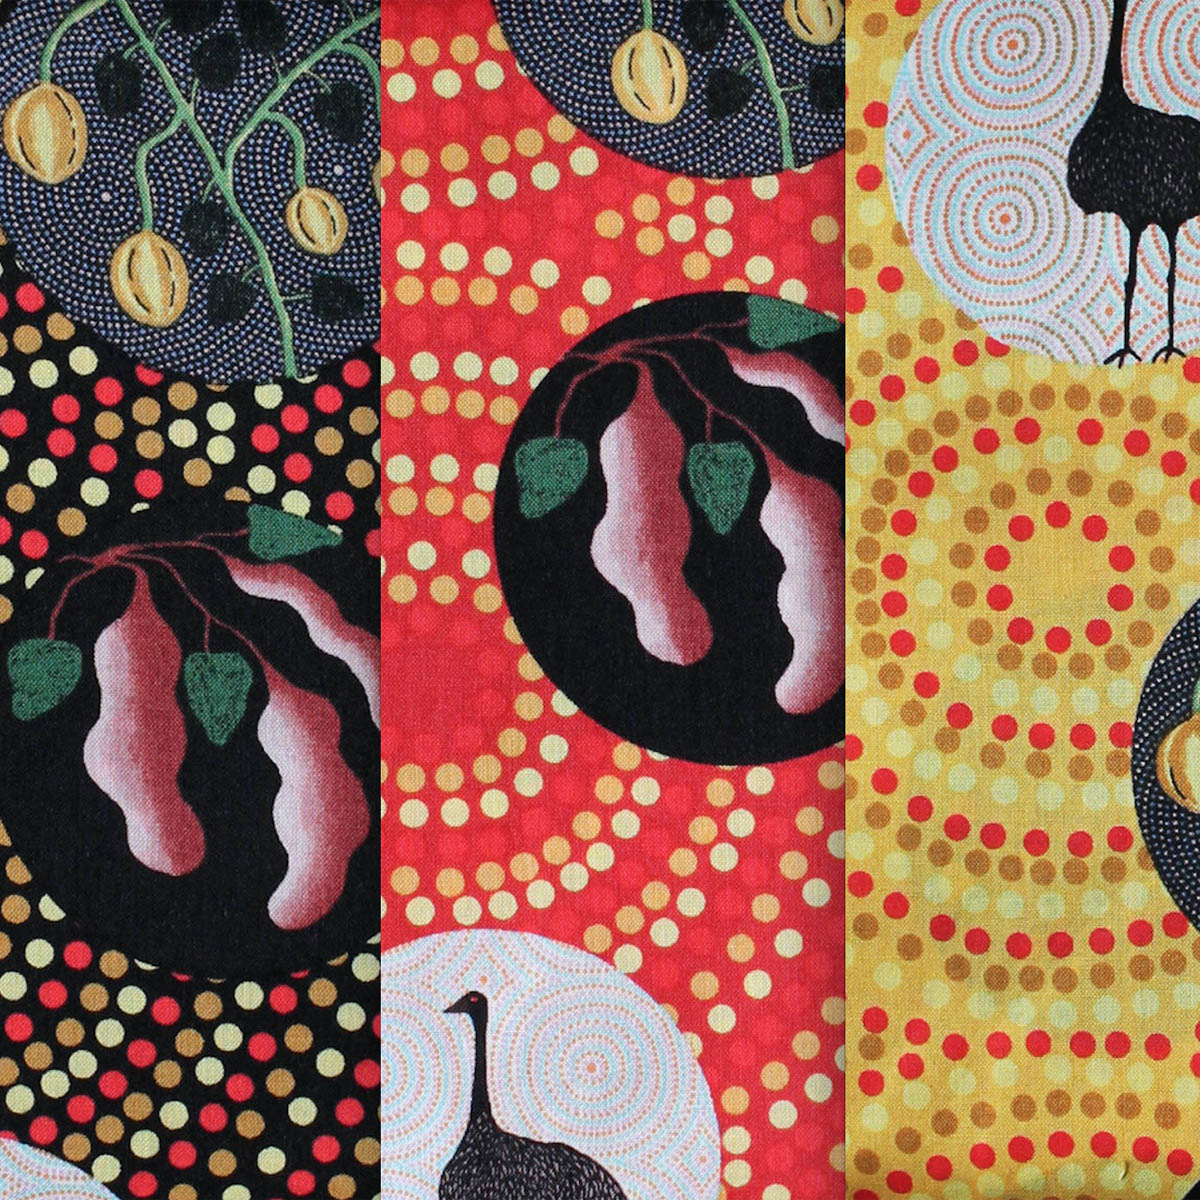 BUSH TUCKER WITH WILD FIG RED by Aboriginal Artist NATASHA STUART